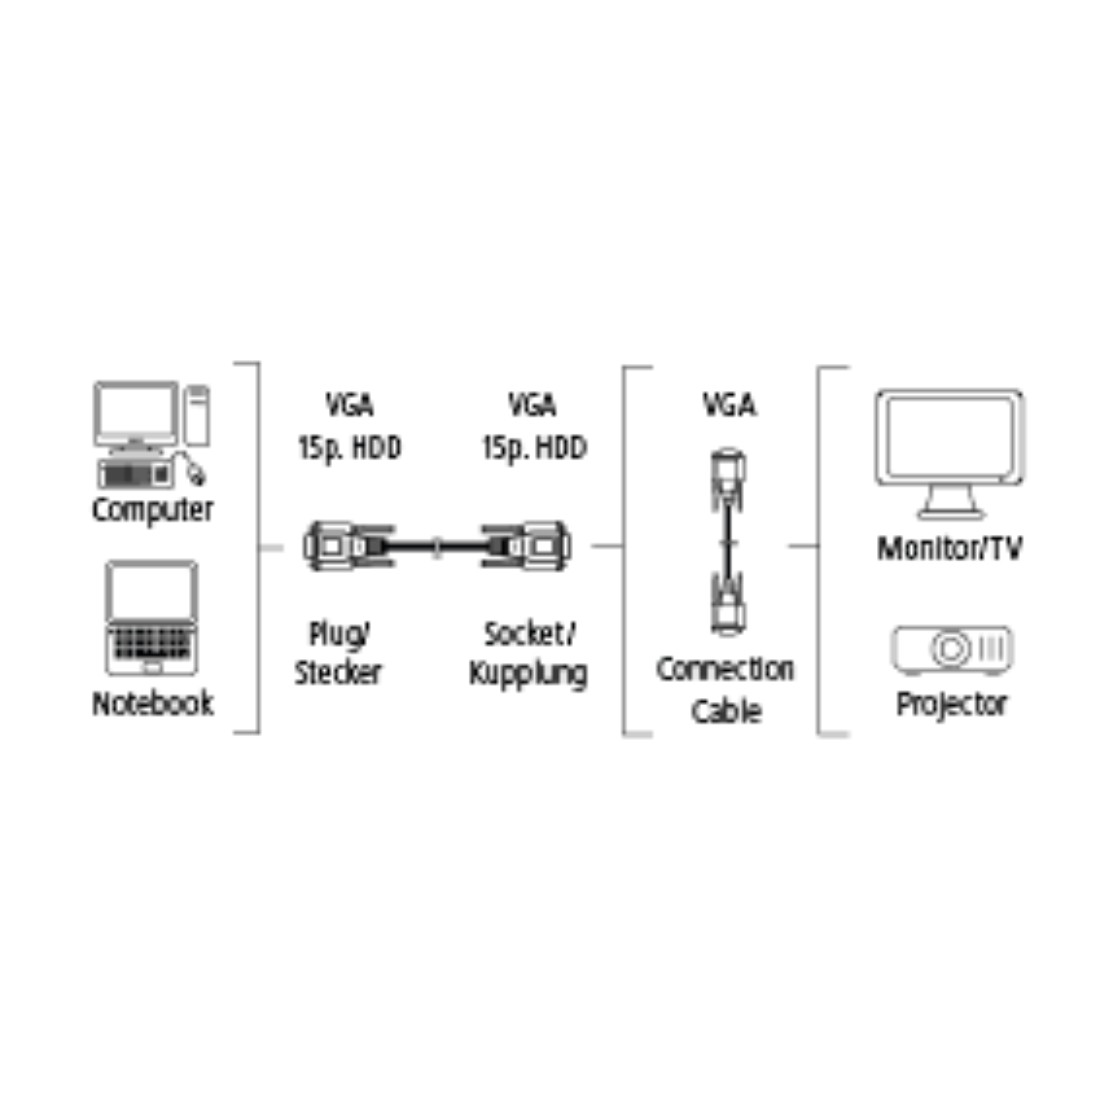 vga extension cable wiring diagram of a netball court projector collaboration and visualization hight resolution stx high res line drawing hama shielded 1 80 sch